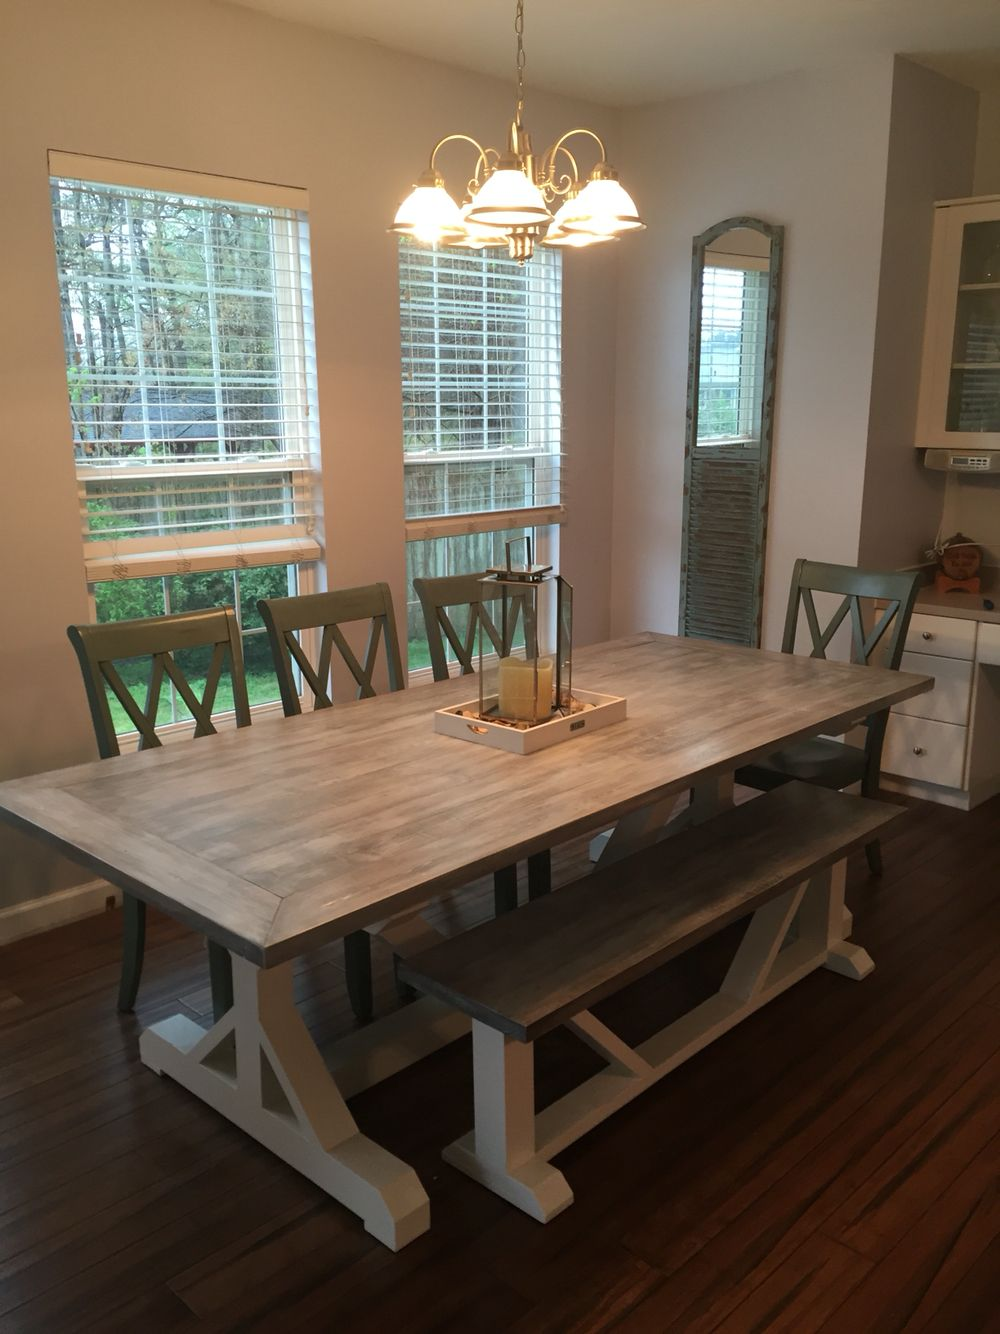 Kitchen Farm Table custom made by Bourbon Woodworking